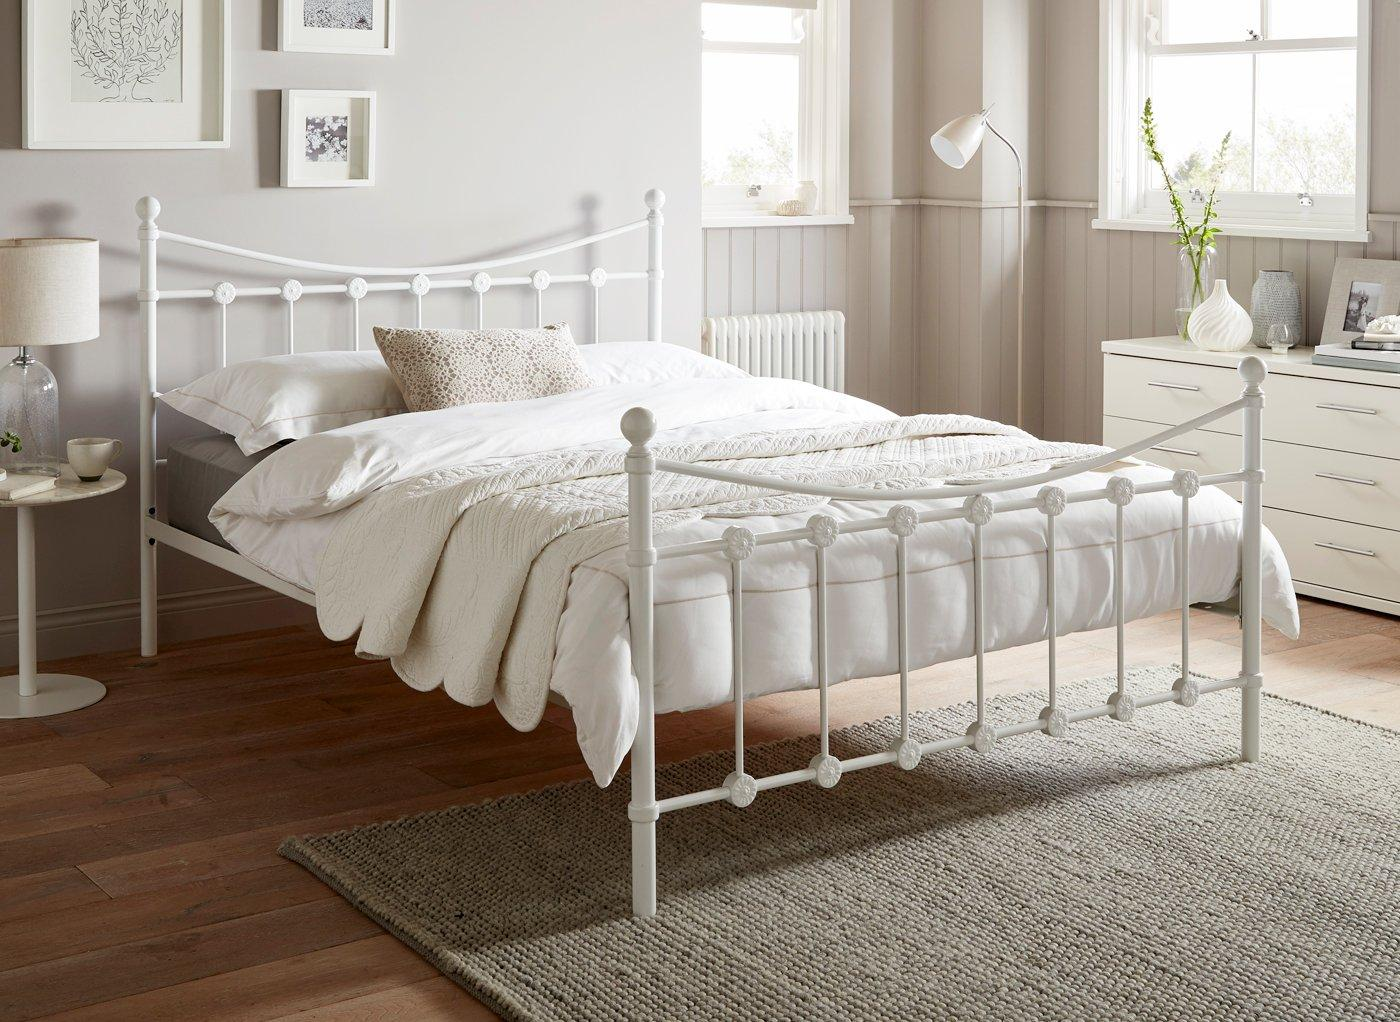 Dreams Ava Metal Bed Frame from £159